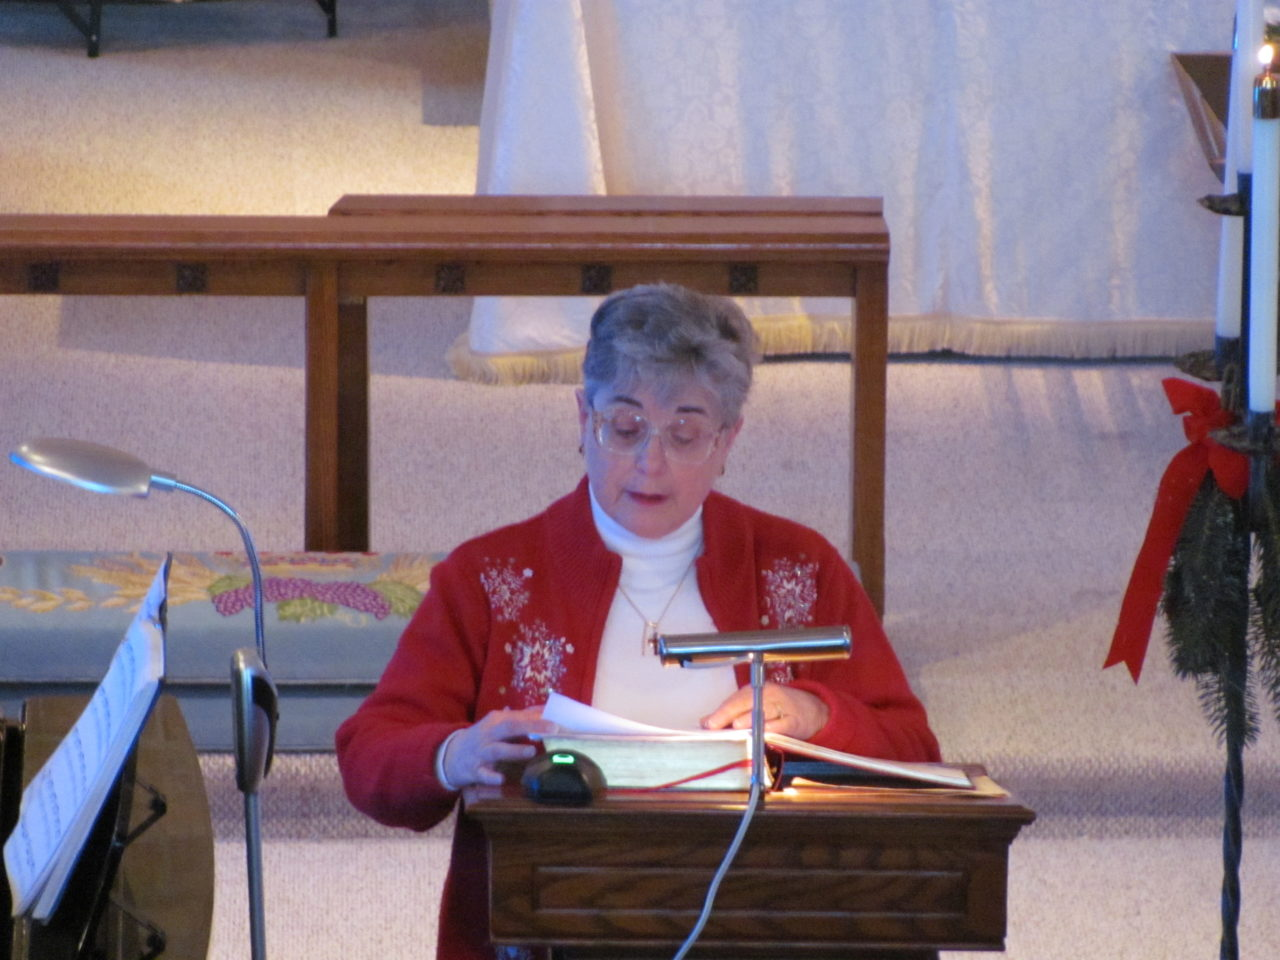 A Reader at our Lessons and Carols service